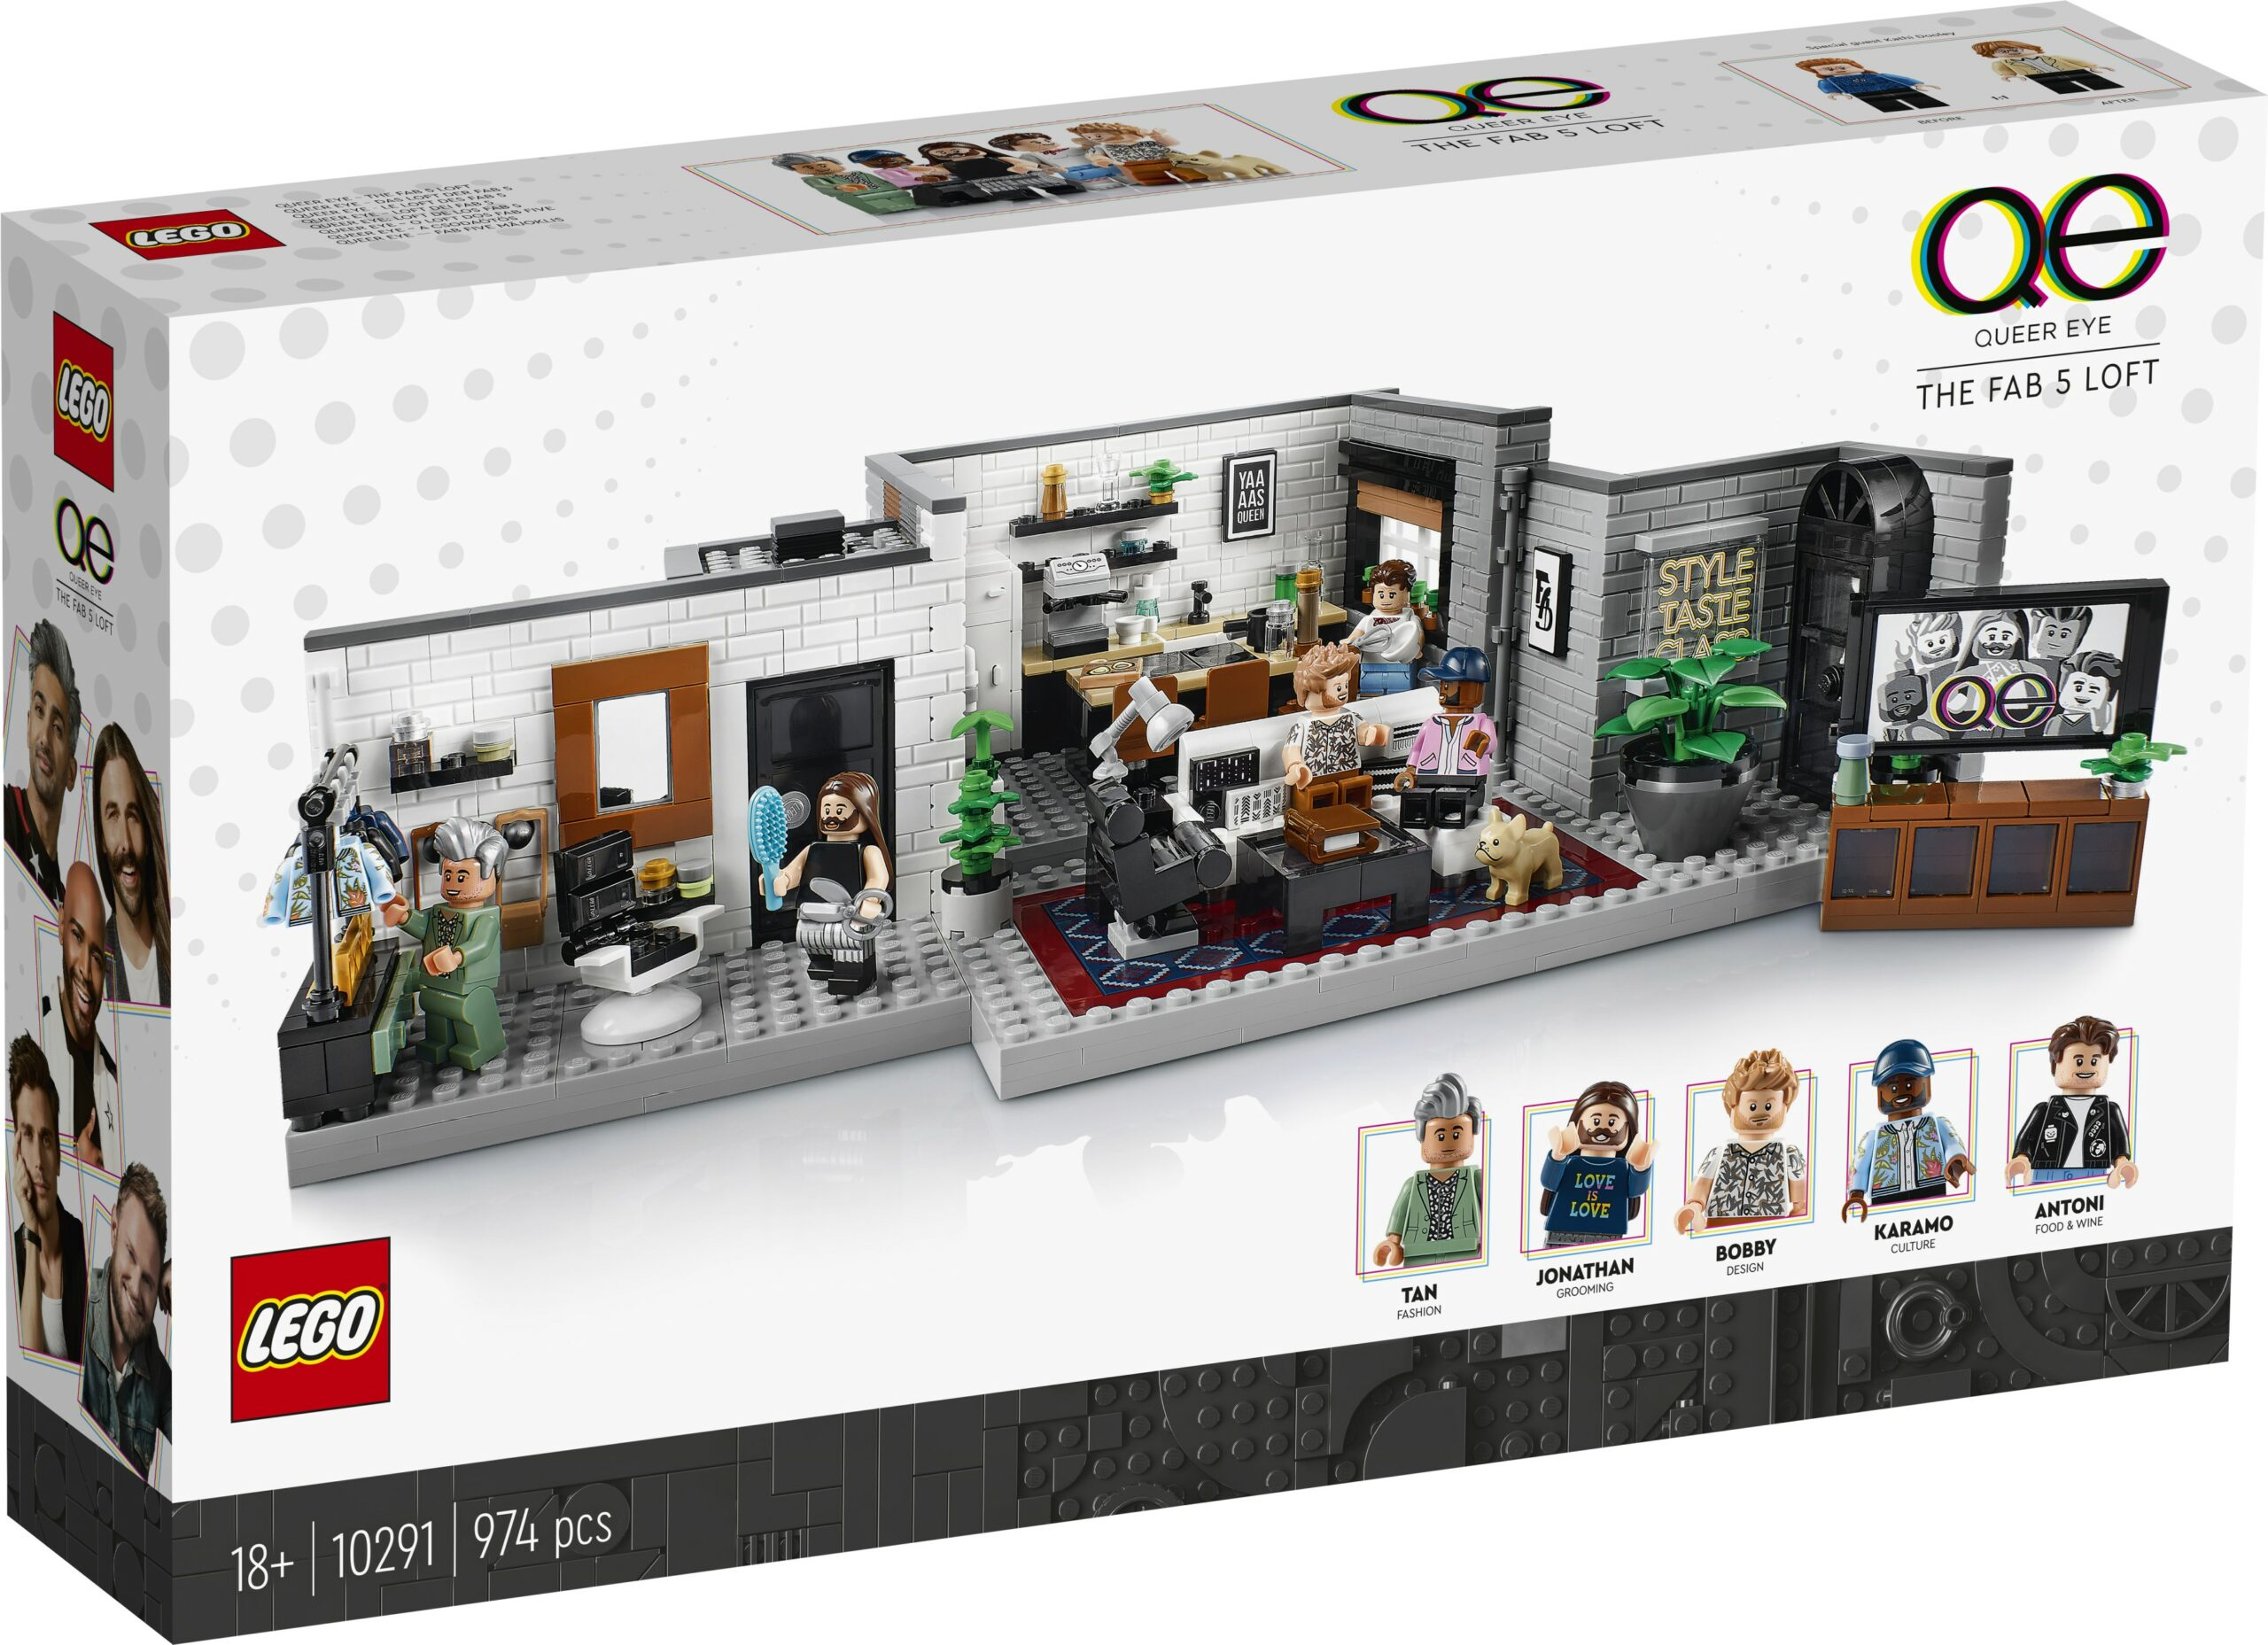 LEGO and Queer Eye create a brick model of the Fab 5 Loft 26